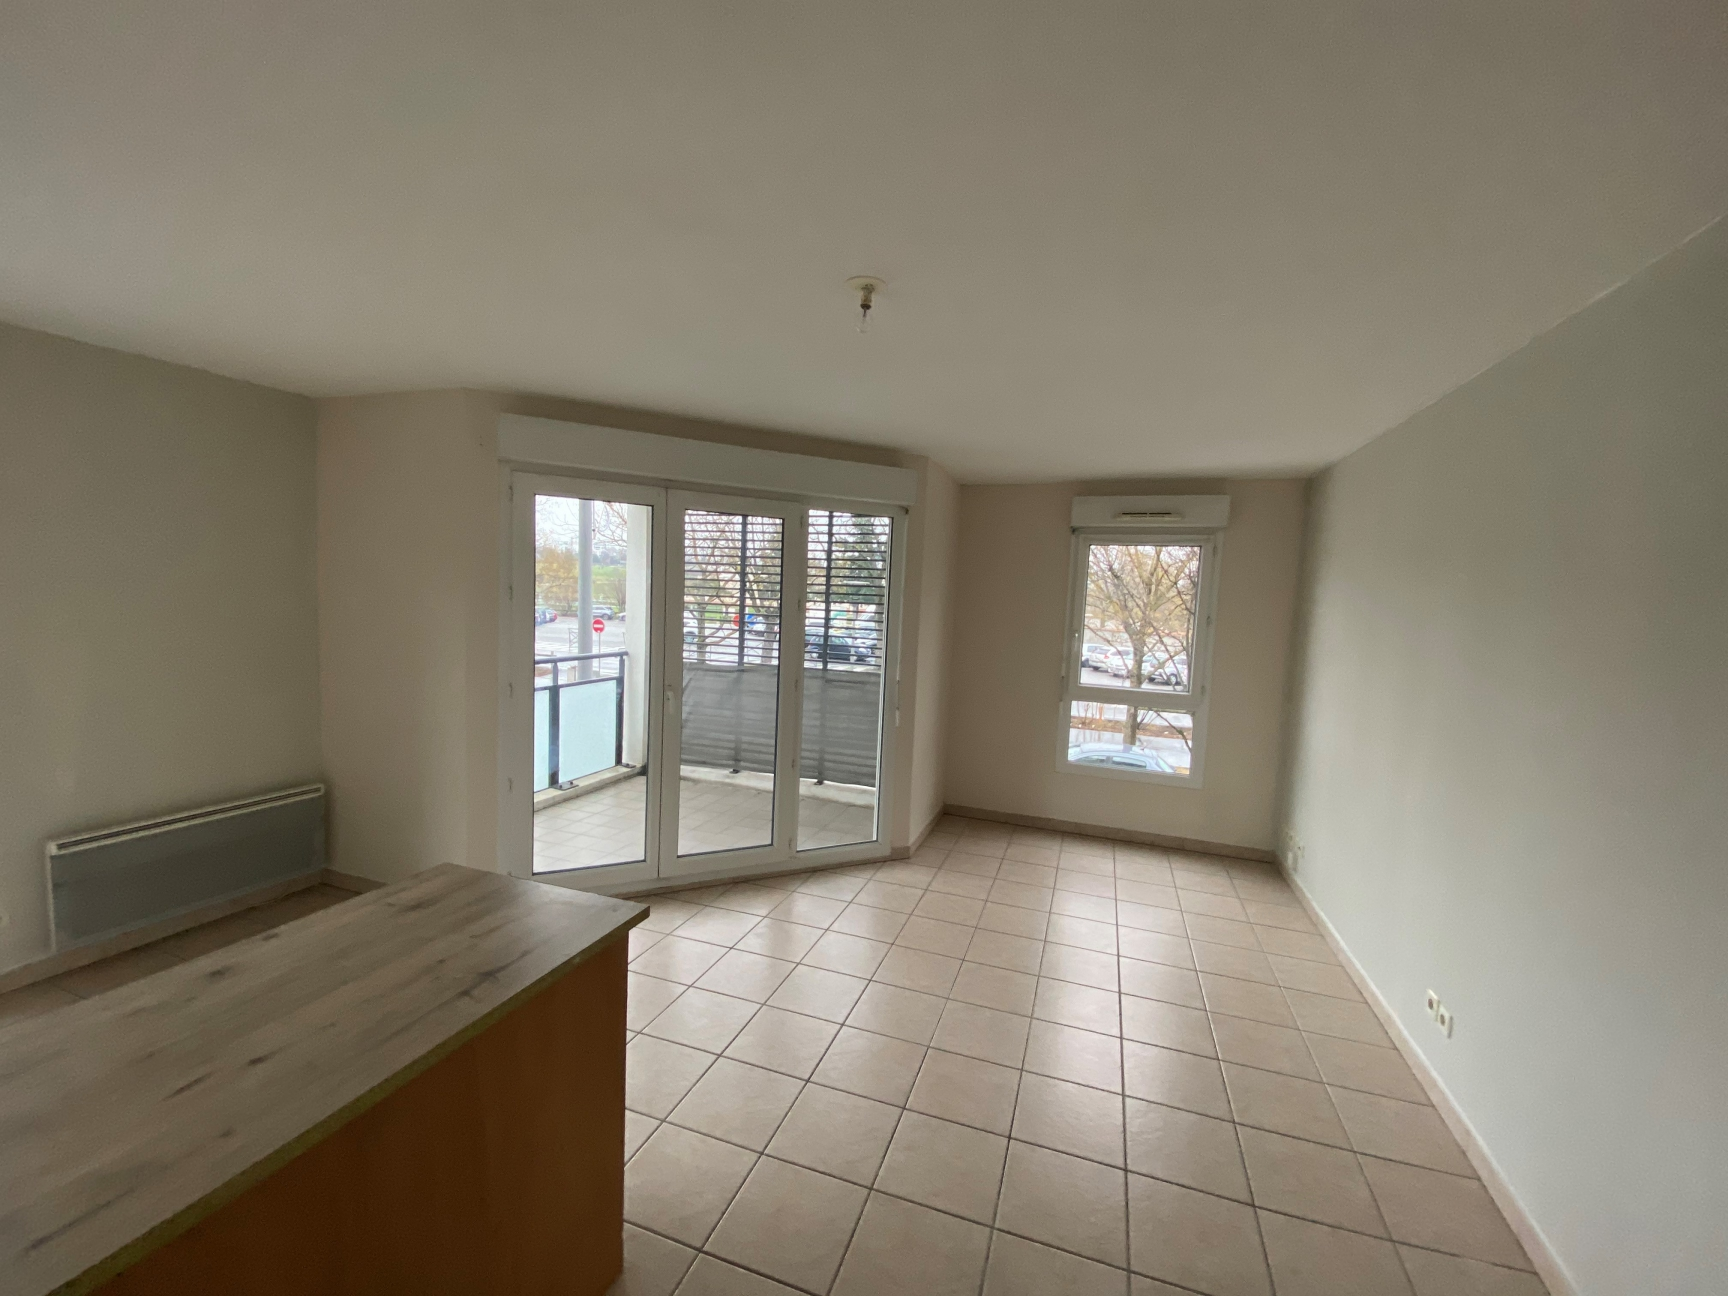 Photos de Appartement à Saint-Priest (69800)